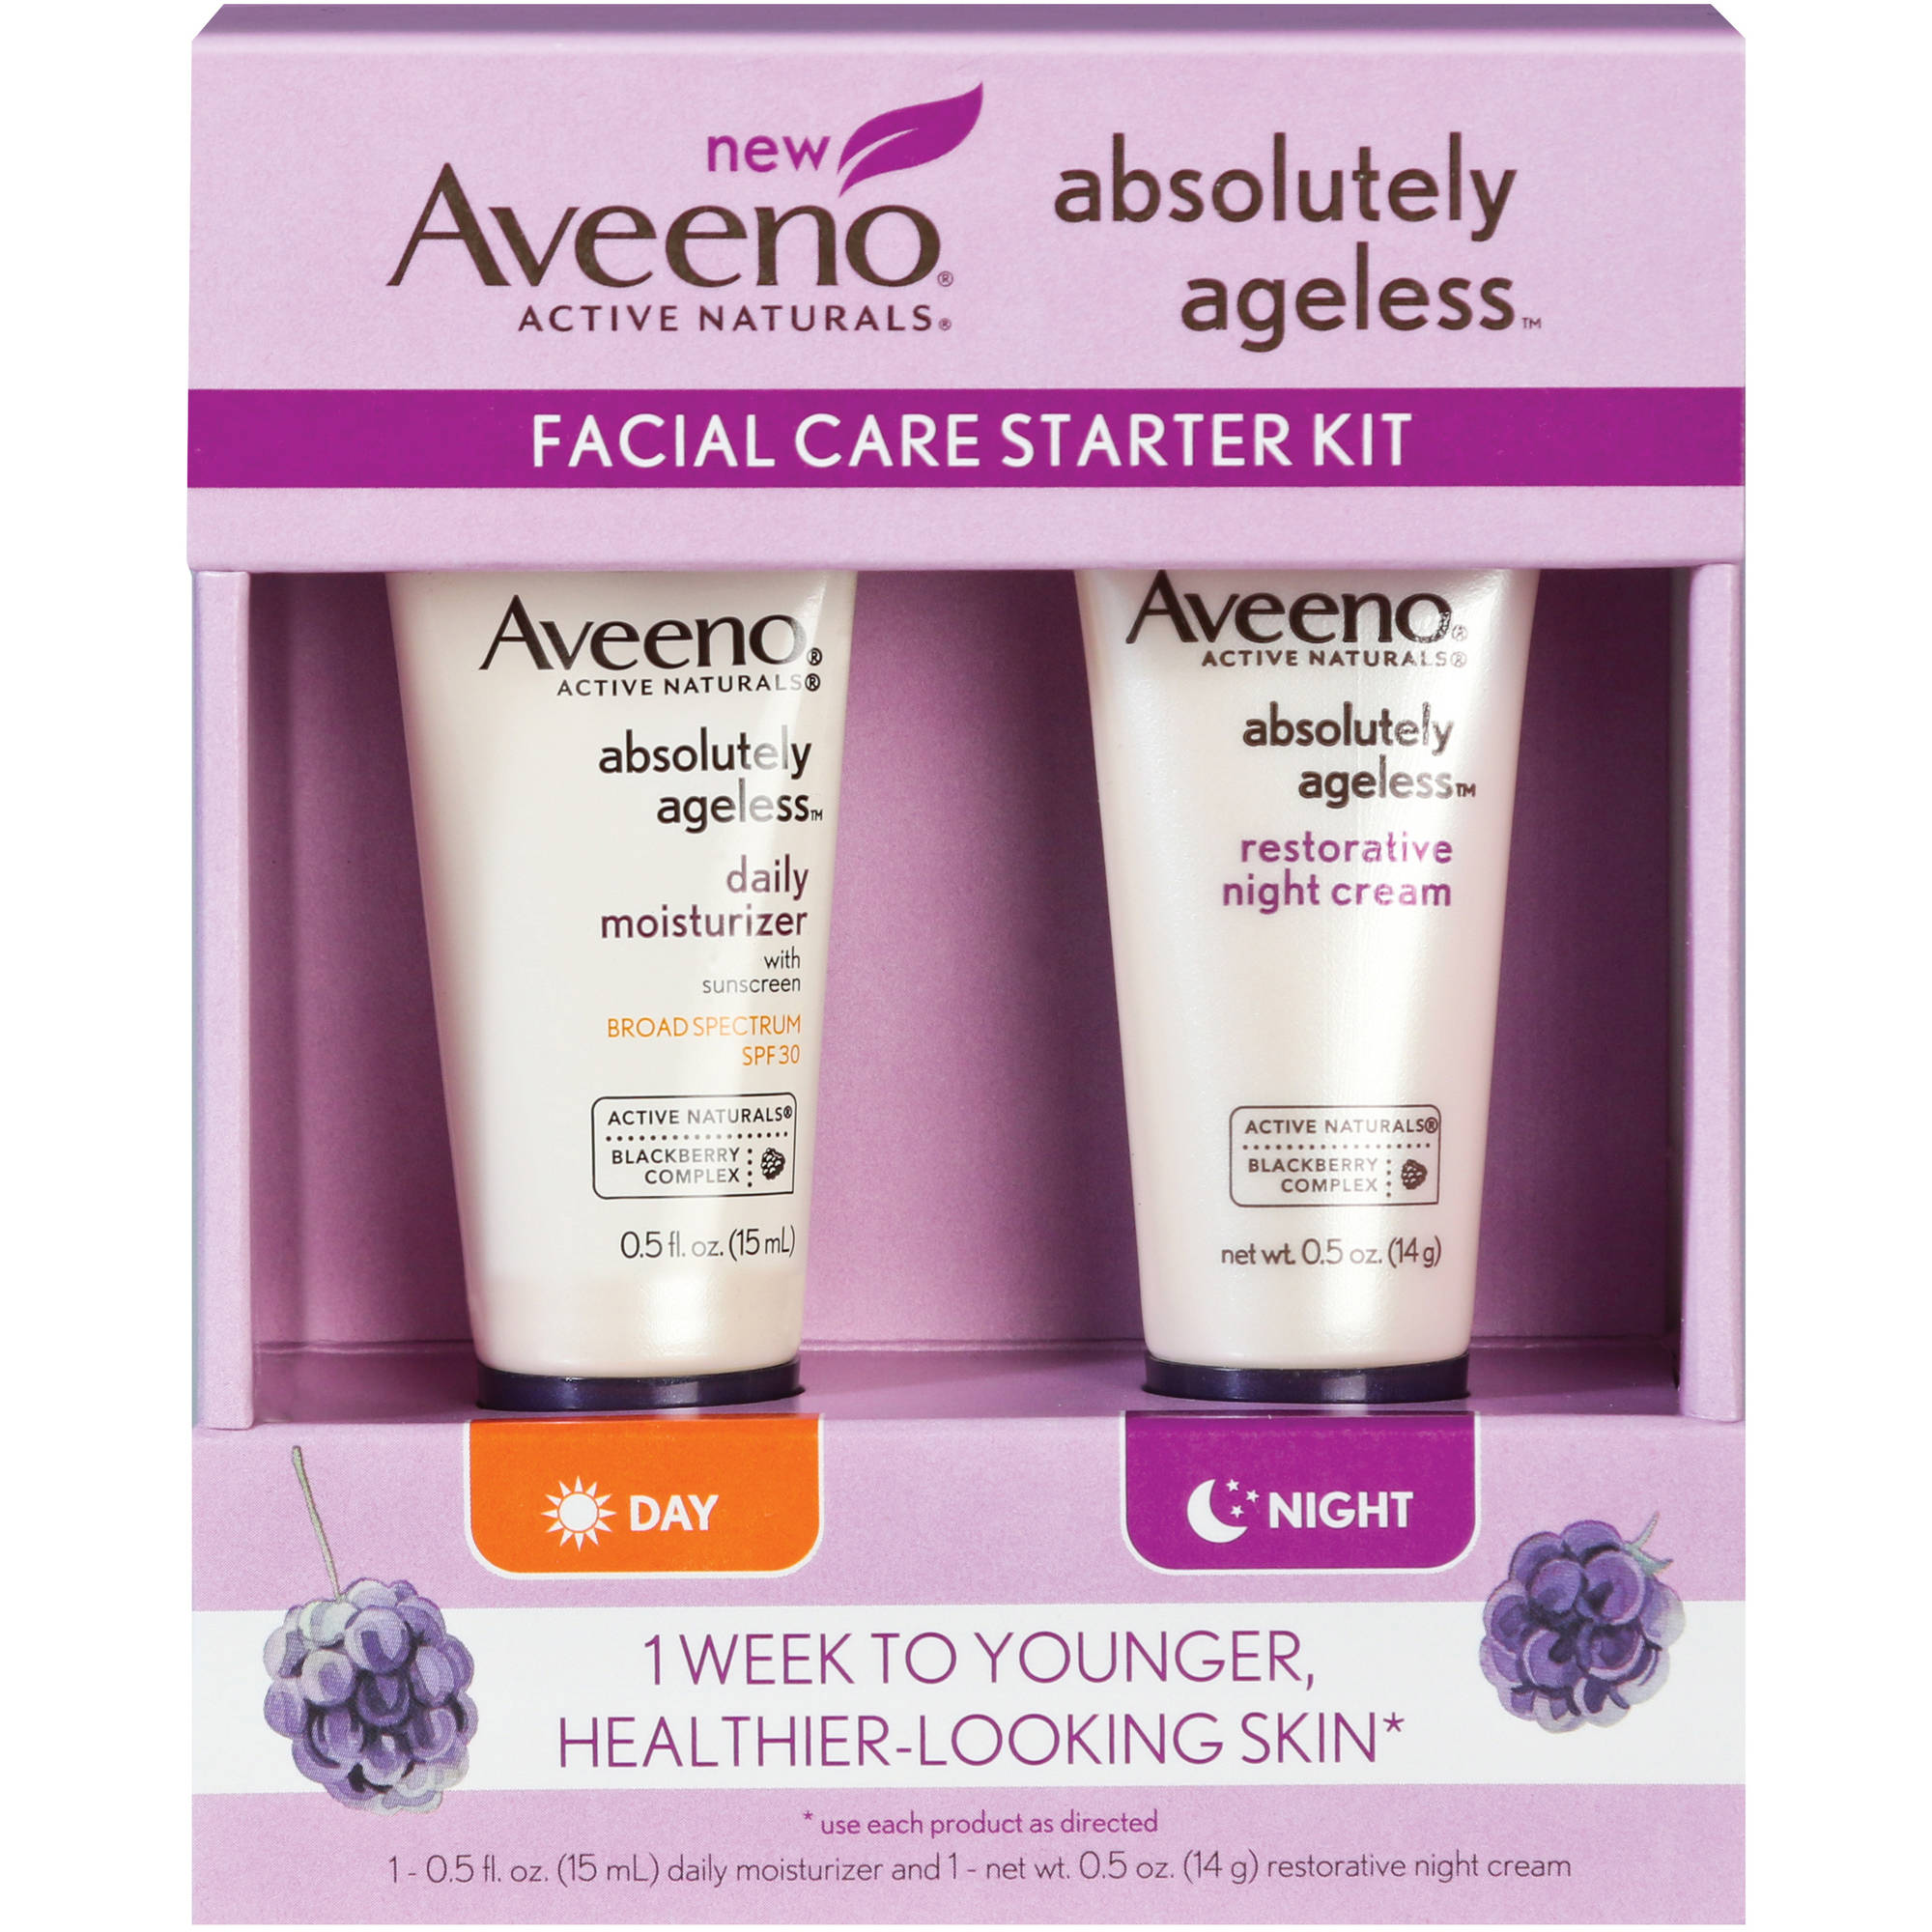 Aveeno Absolutely Ageless Facial Care Starter Kit, 2 pc